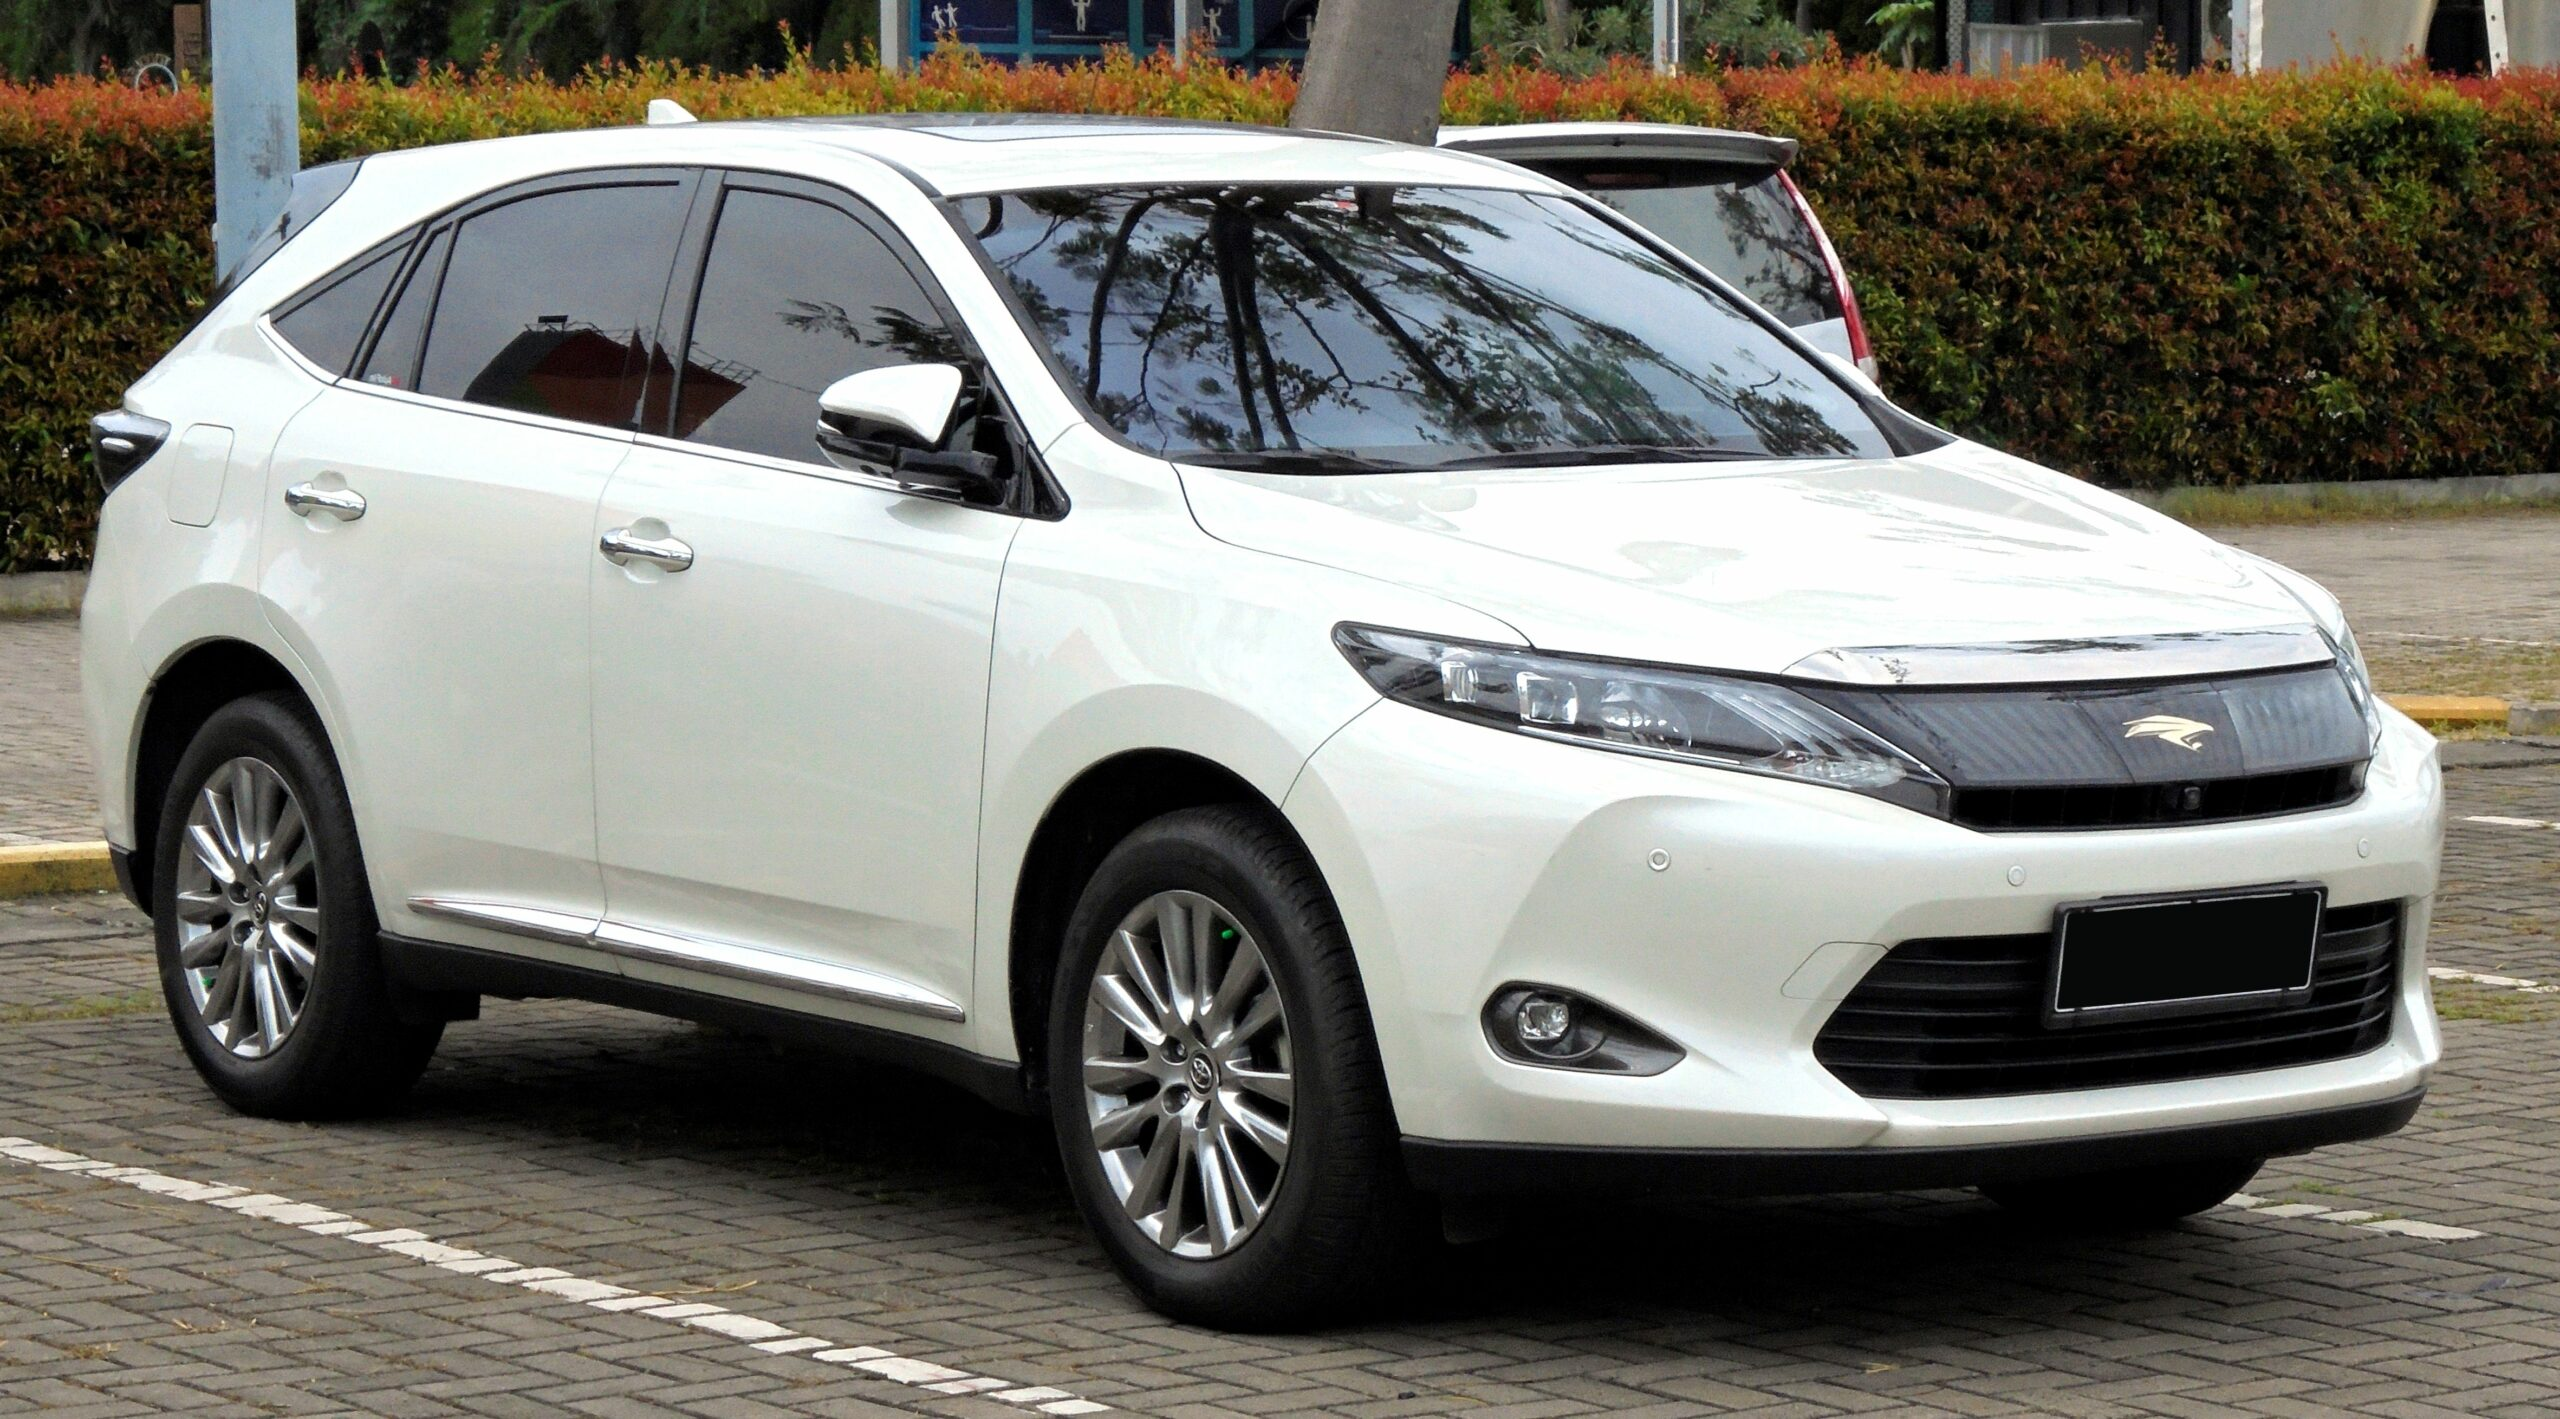 2020 toyota harrier Price, Design and Review